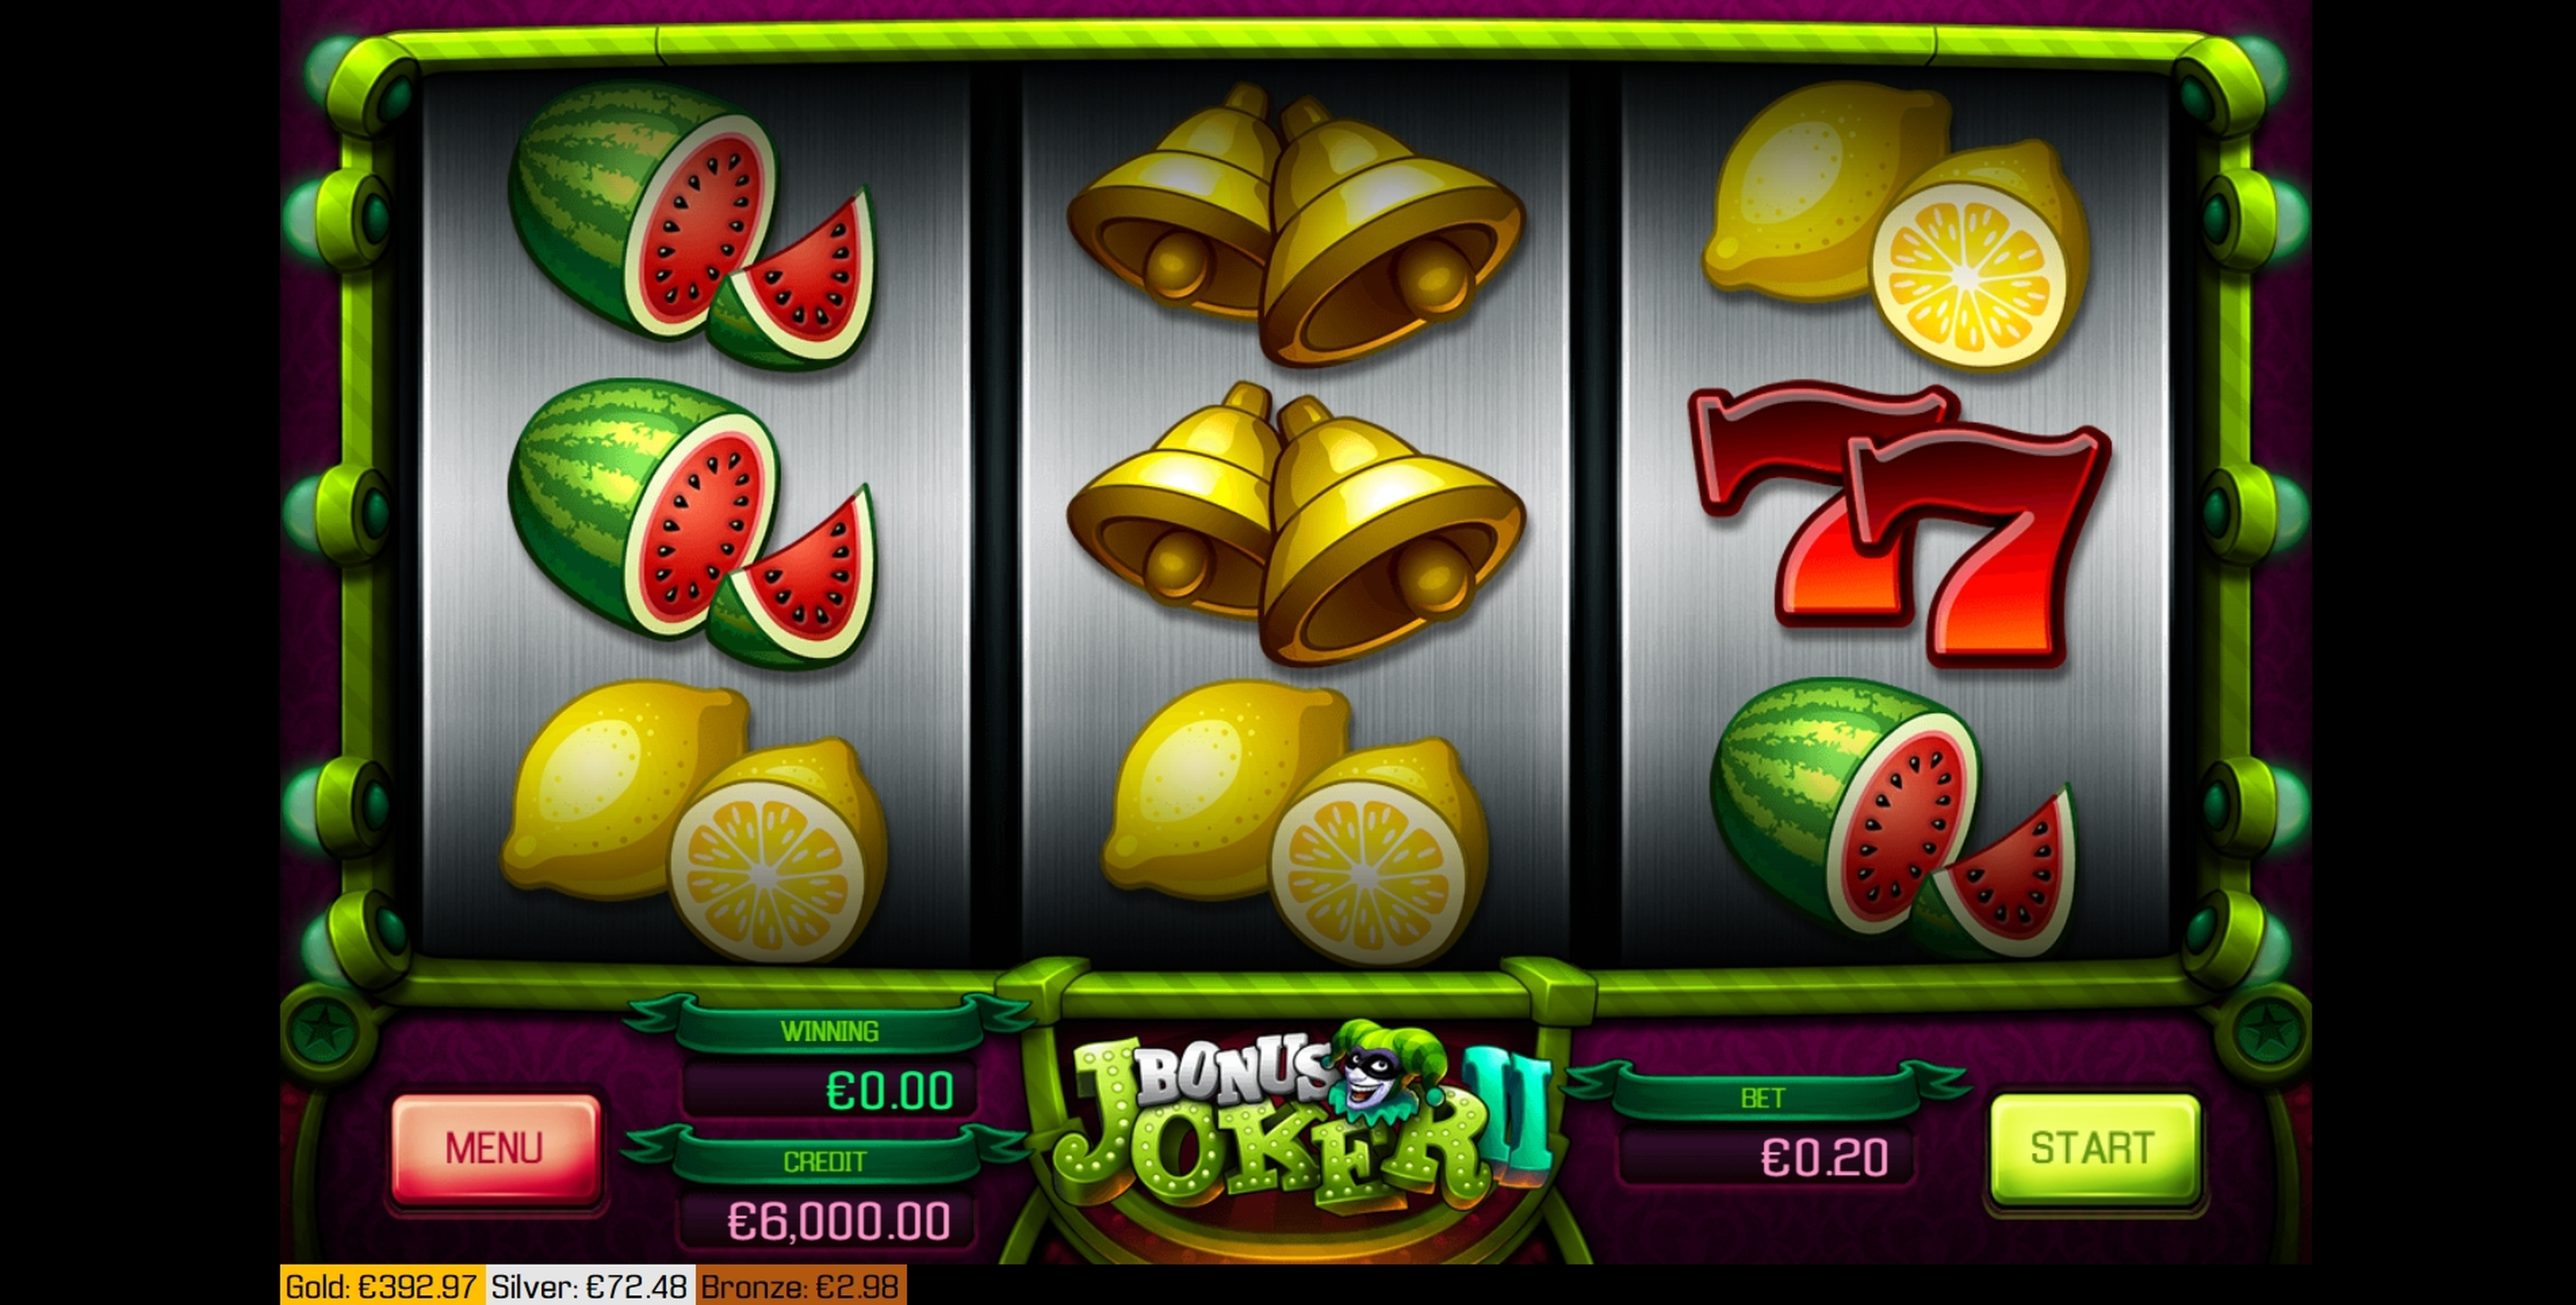 Are there any bonuses and rewards offered by online gambling sites?